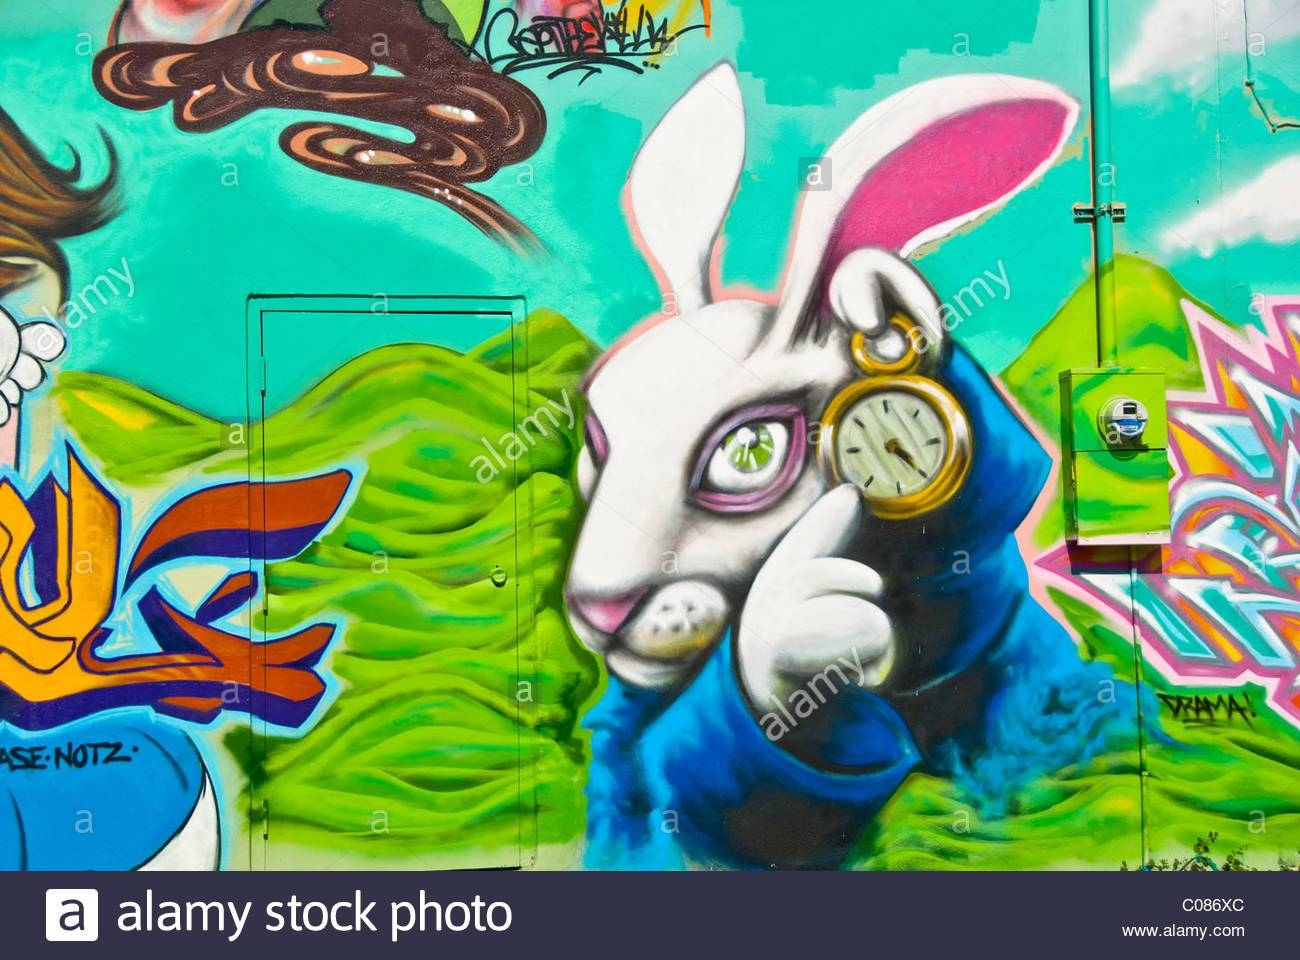 "Alice In Wonderland"" Graffiti Wall Art Mural Detail In Wynwood Art Inside Current Miami Wall Art (View 3 of 20)"